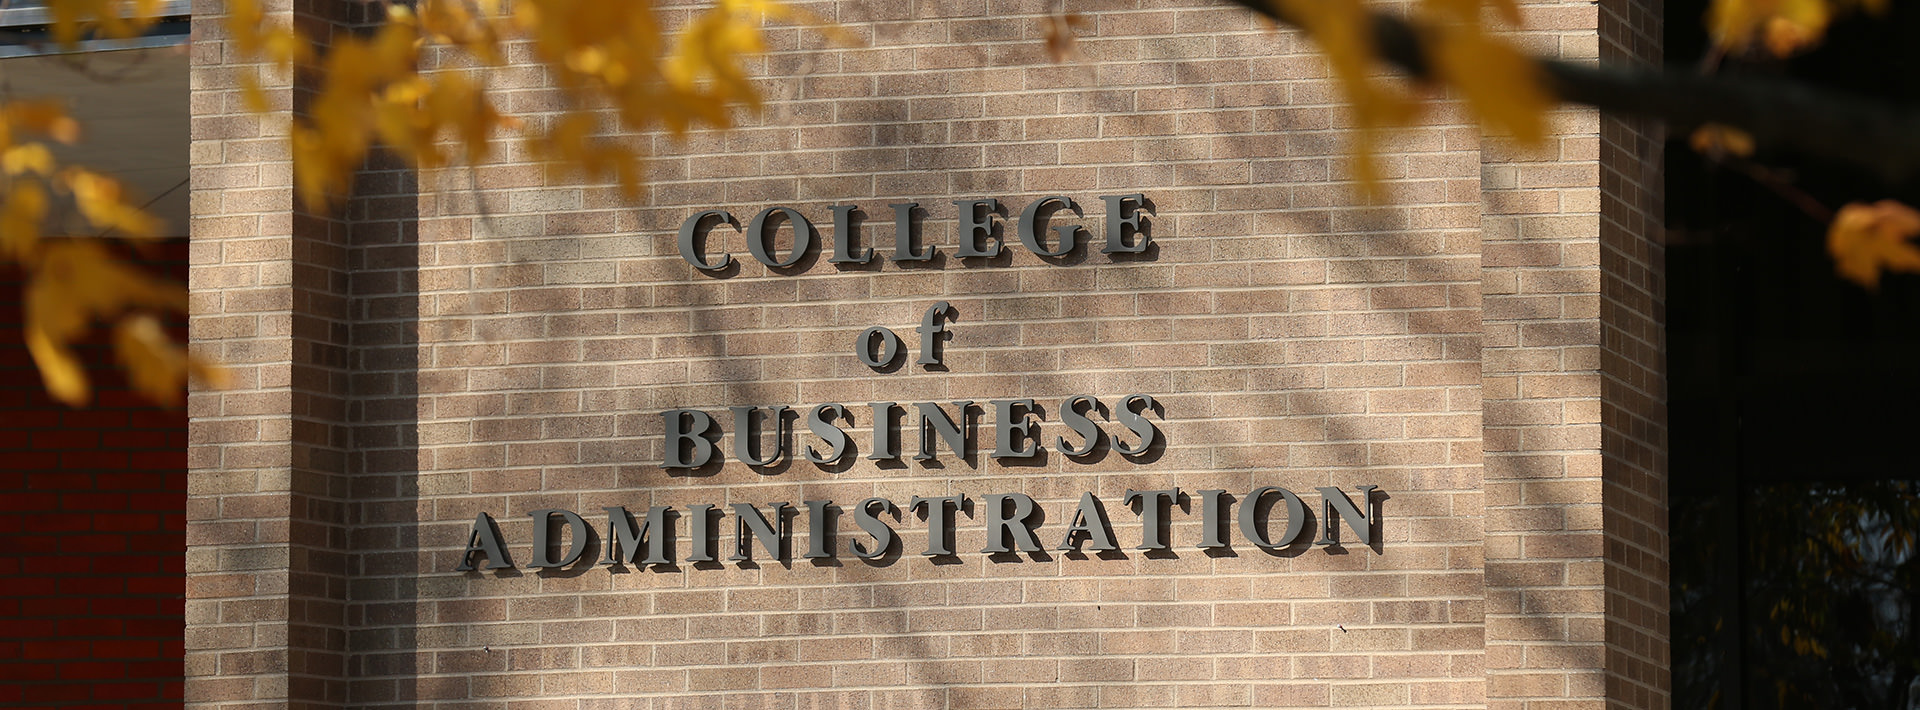 business building BGSU5642 mini